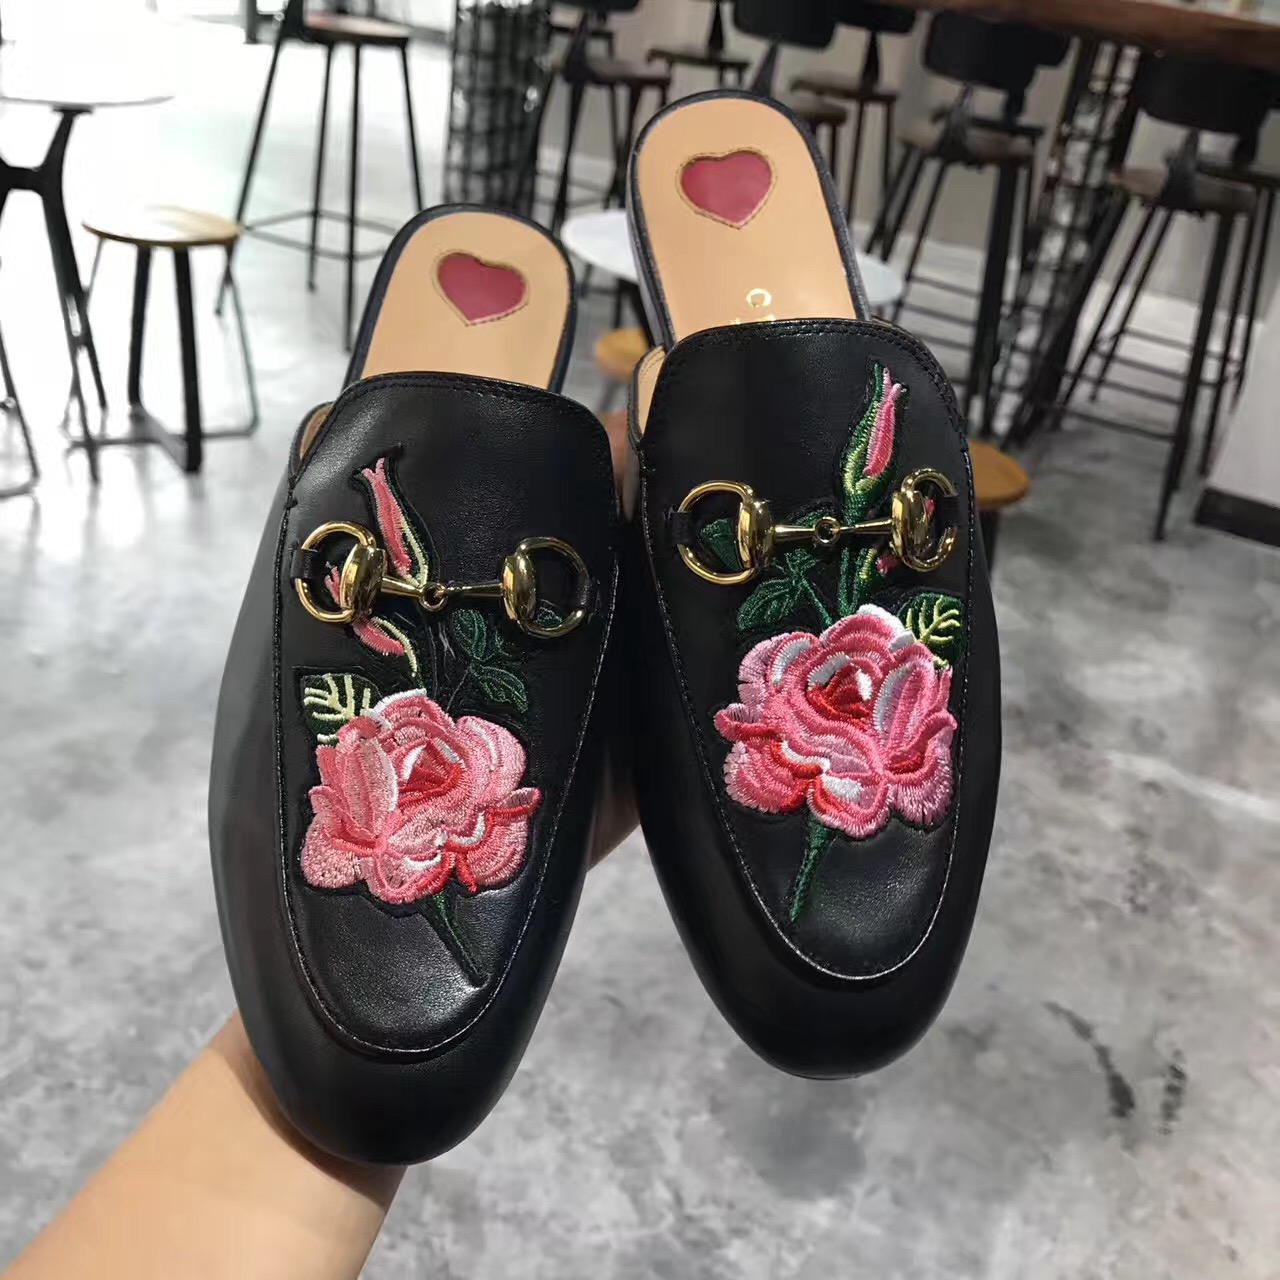 0e7d3f9ed579 The Best Replica Gucci shoes Is Waiting For You